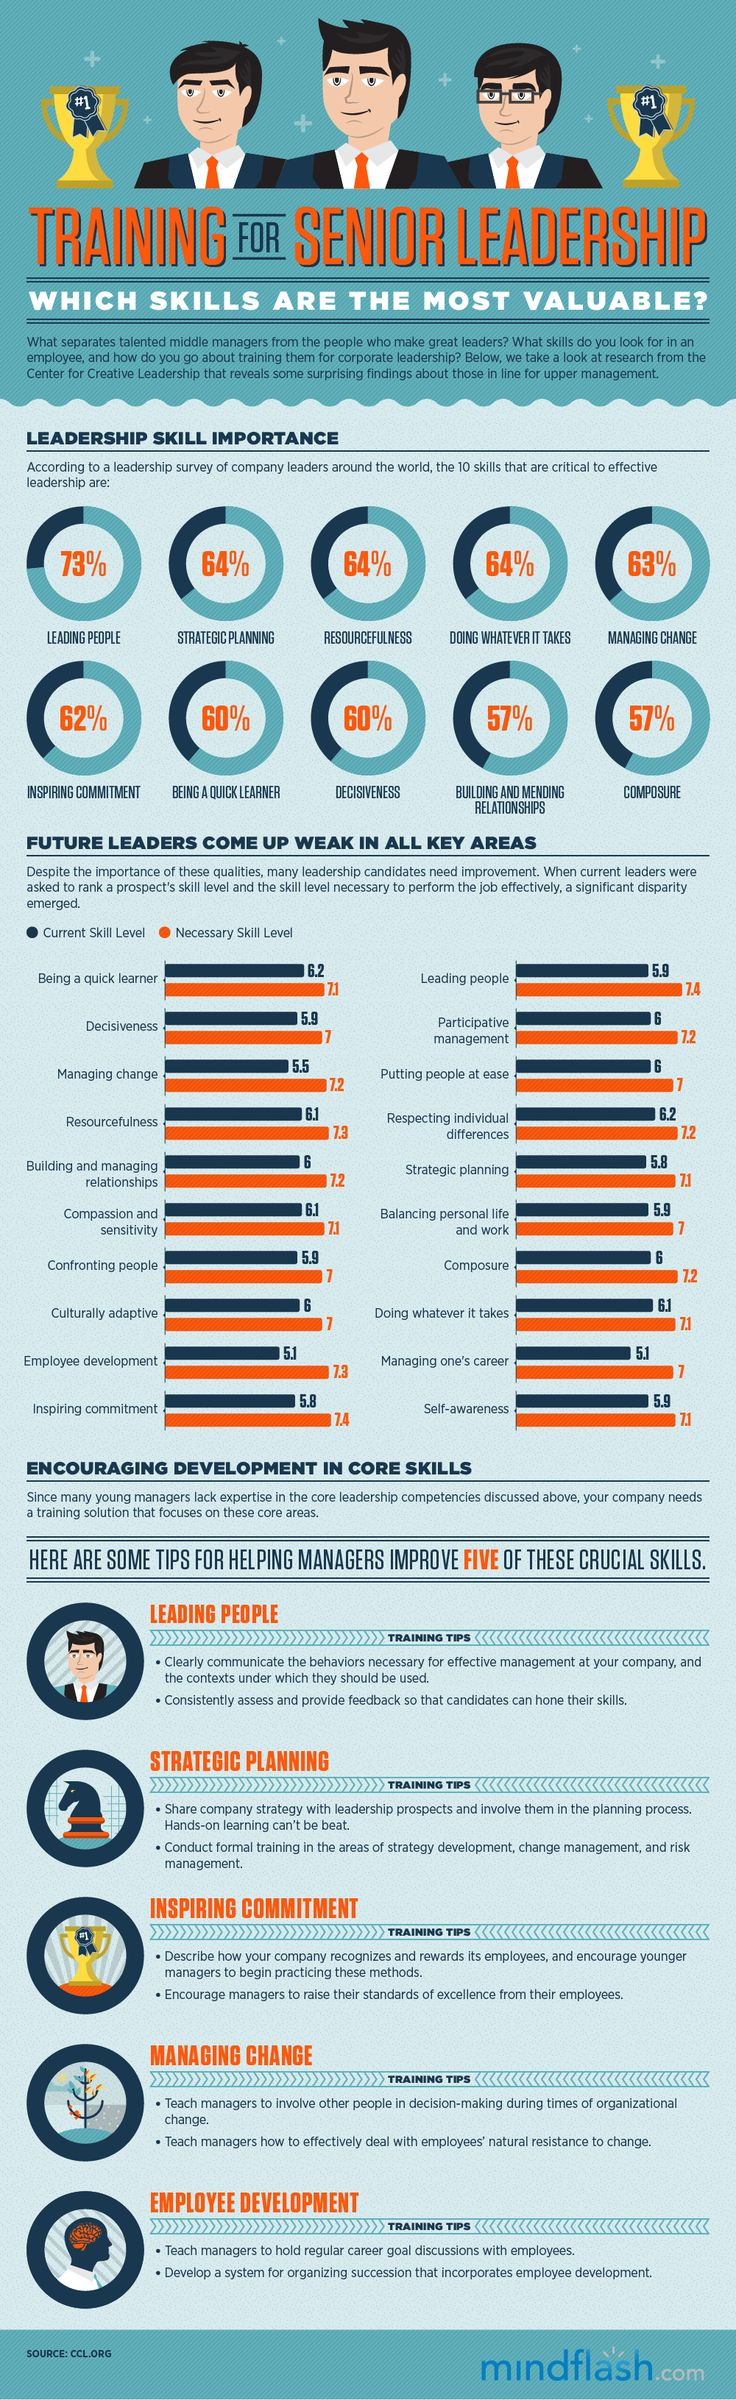 ideas about leadership skills list management check yourself against this list of the best skills in senior leadership they be